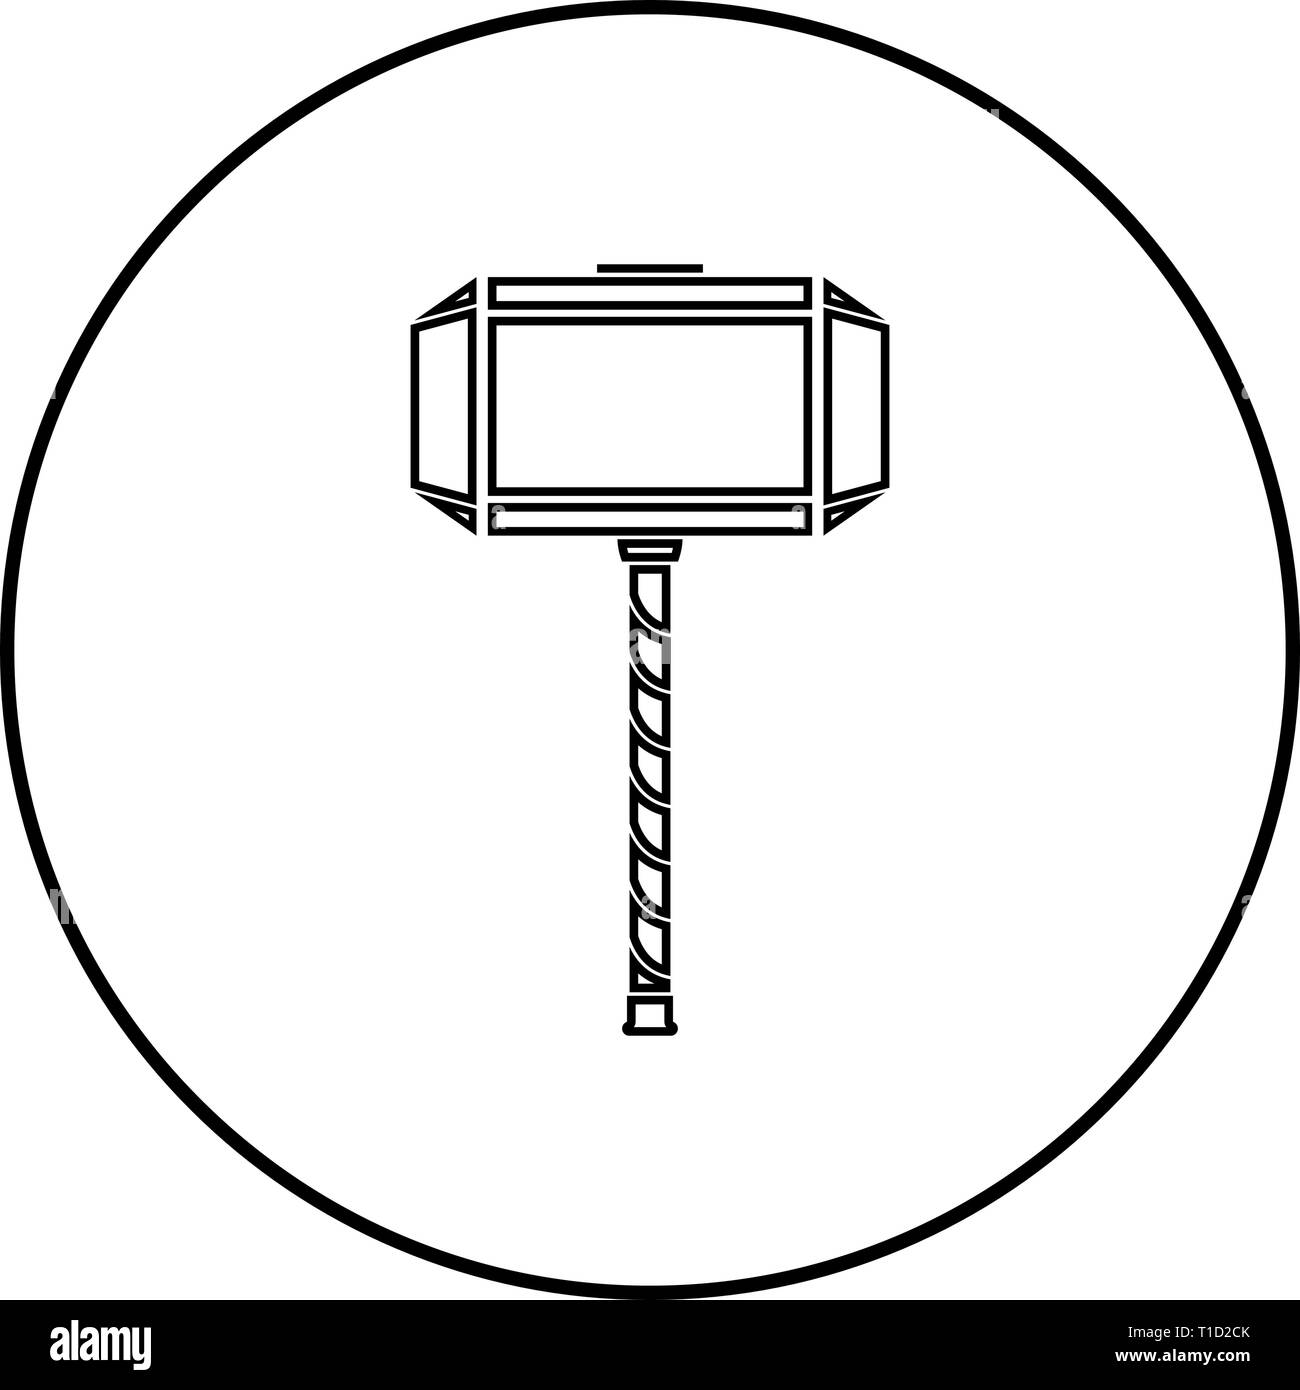 Thor's hammer Mjolnir icon outline black color vector in circle round illustration flat style simple image - Stock Image